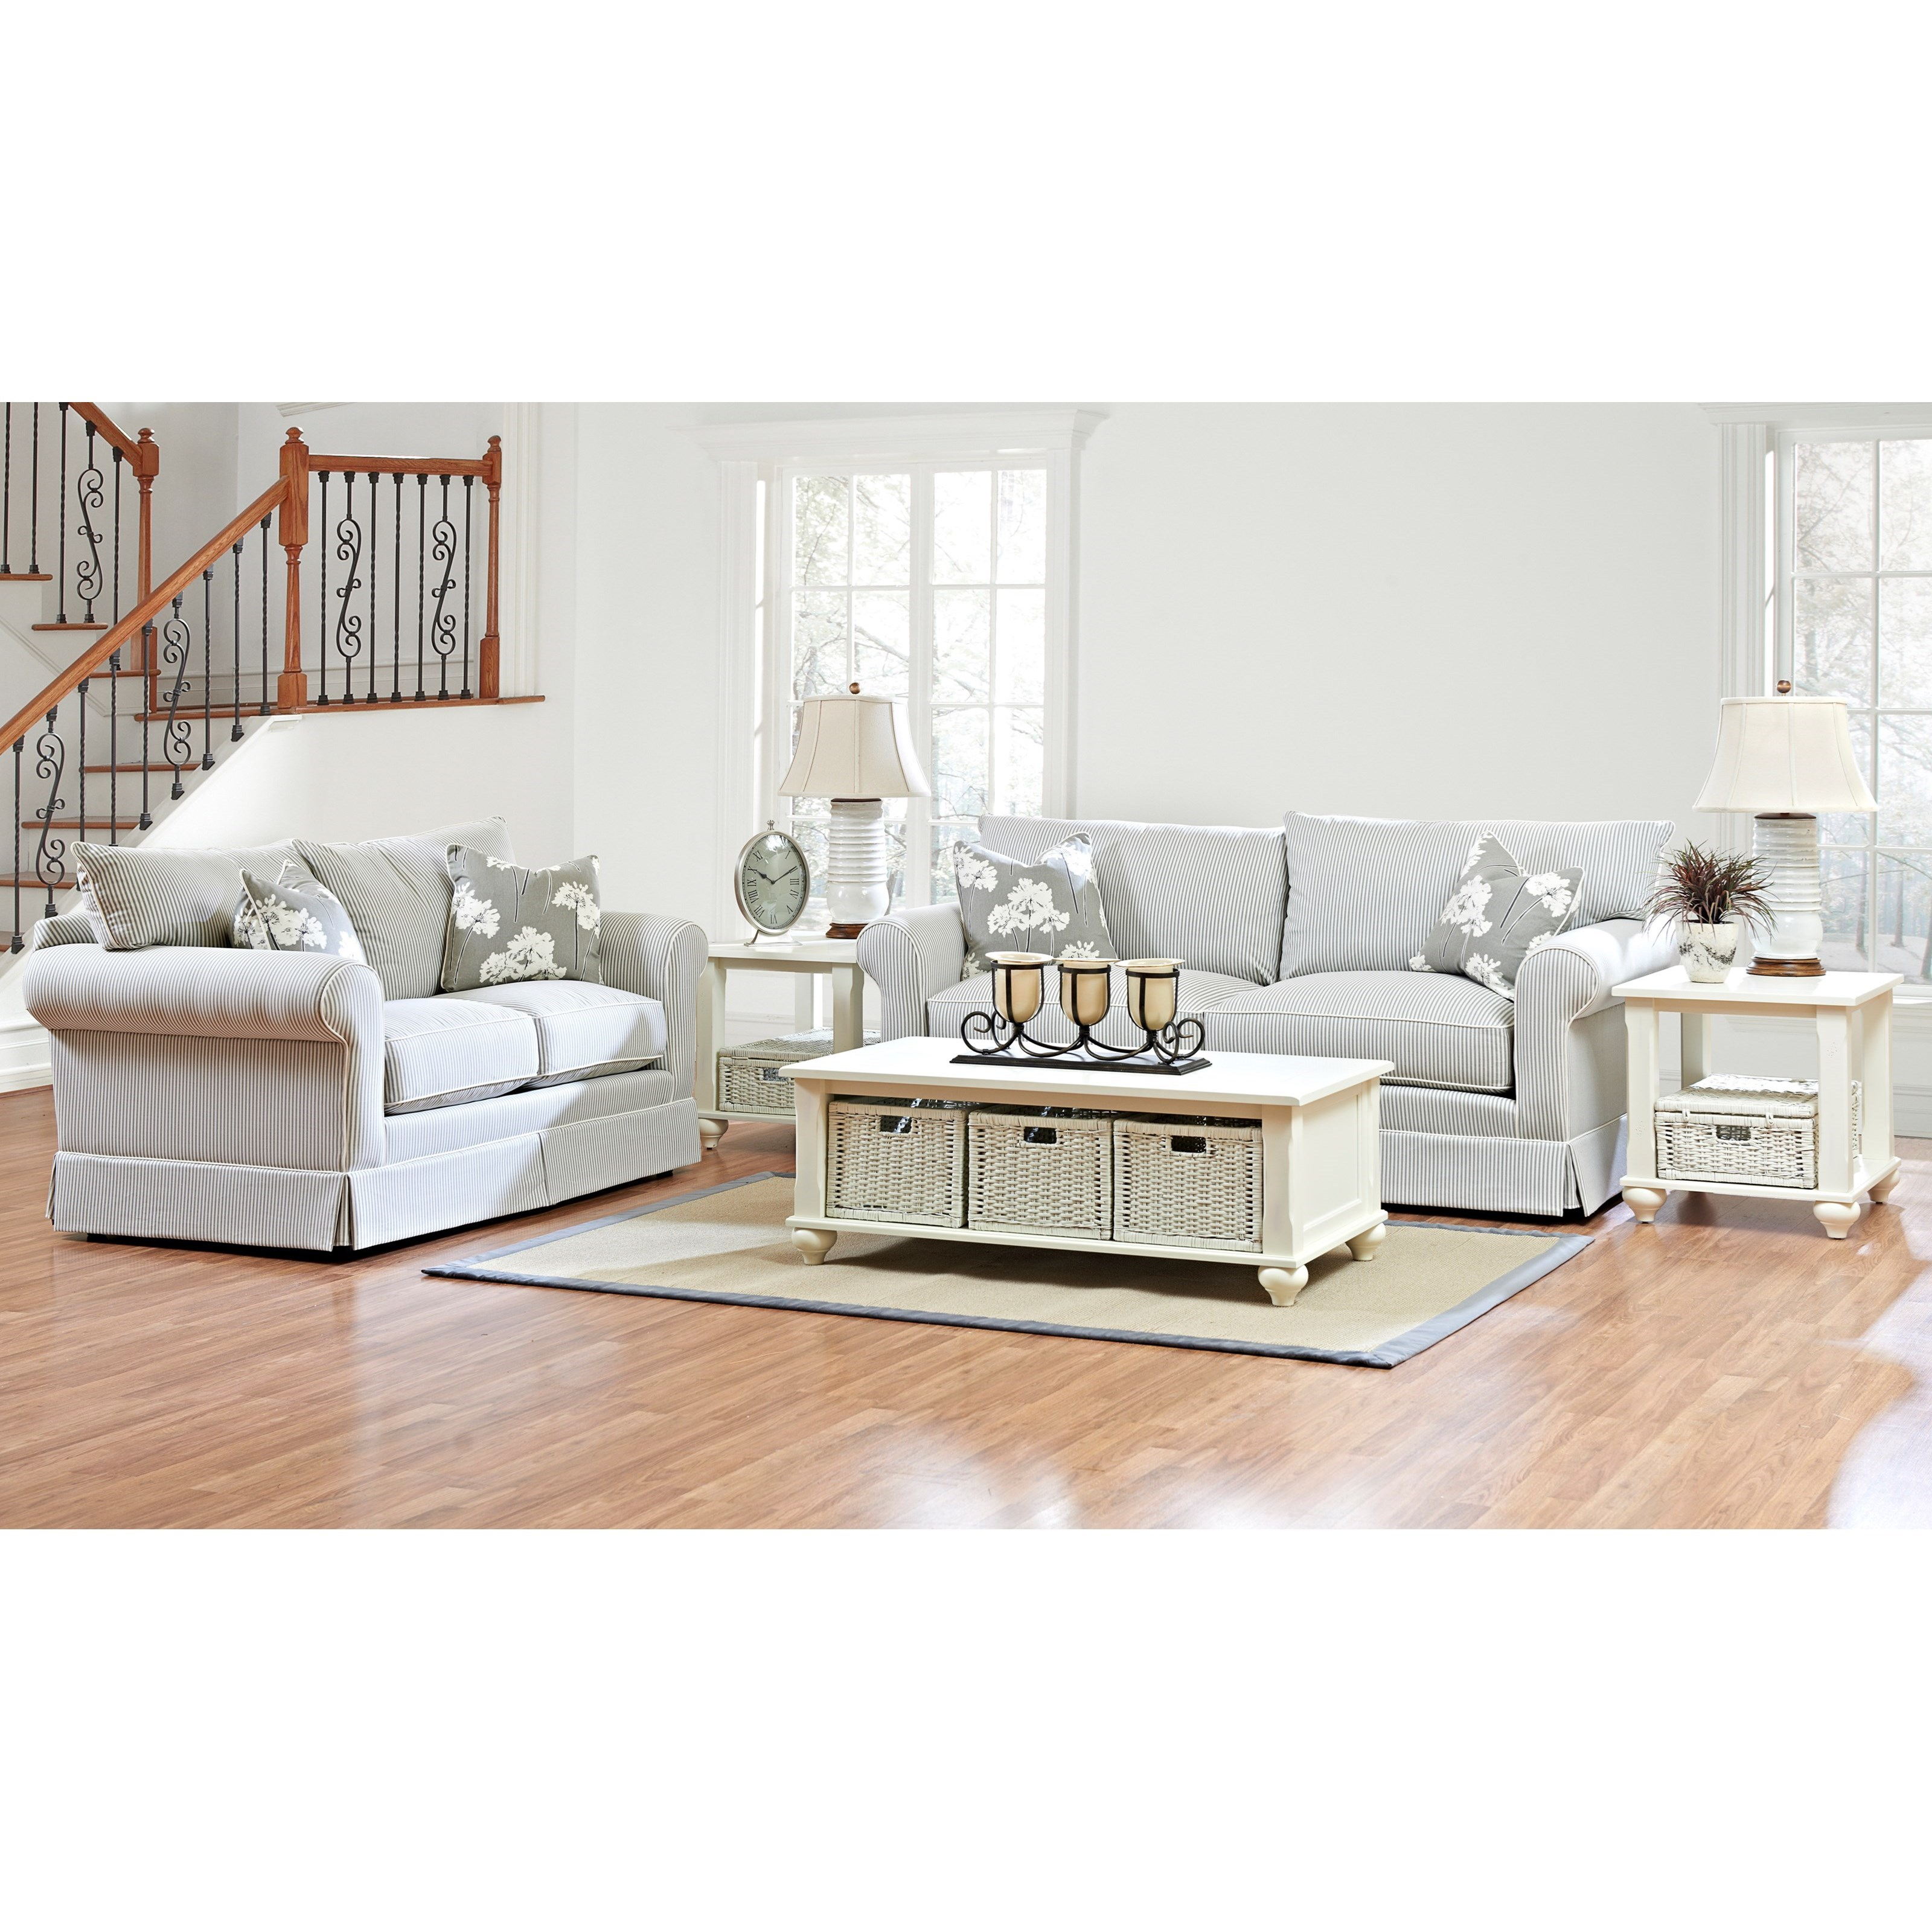 Jenny Living Room Group by Klaussner at Northeast Factory Direct